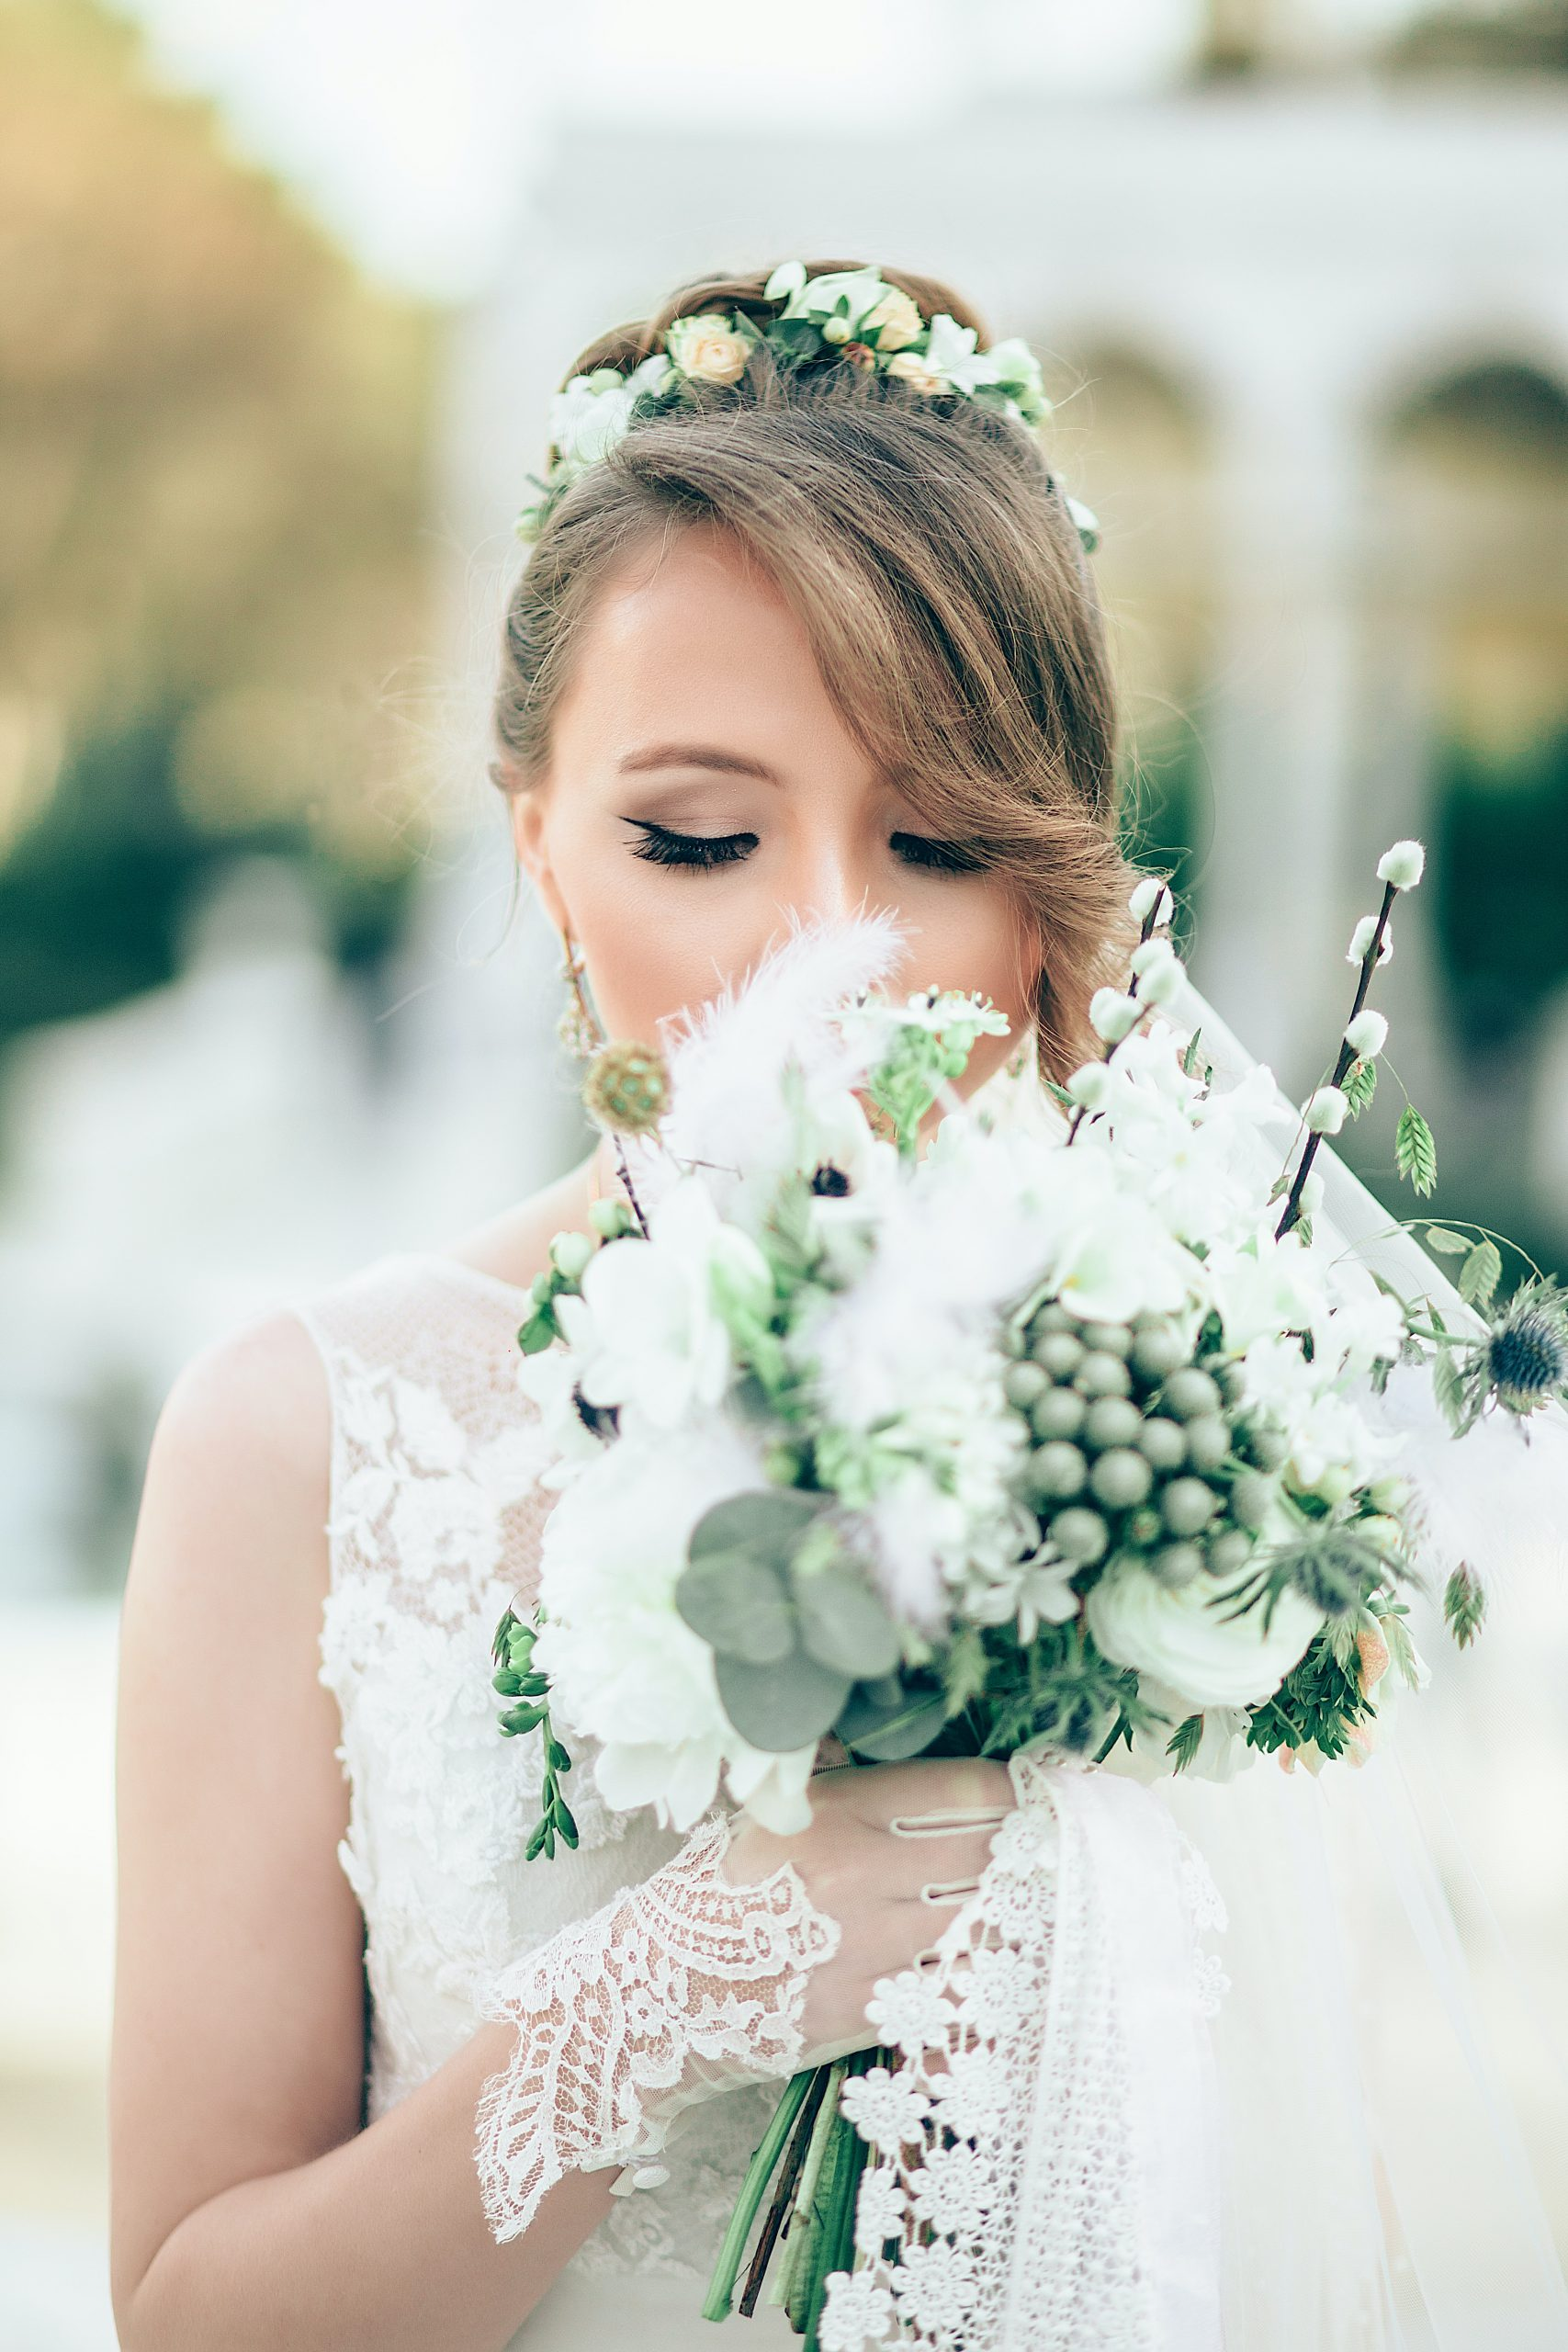 A bride dressed in white posing for a photograph with a bunch of flowers